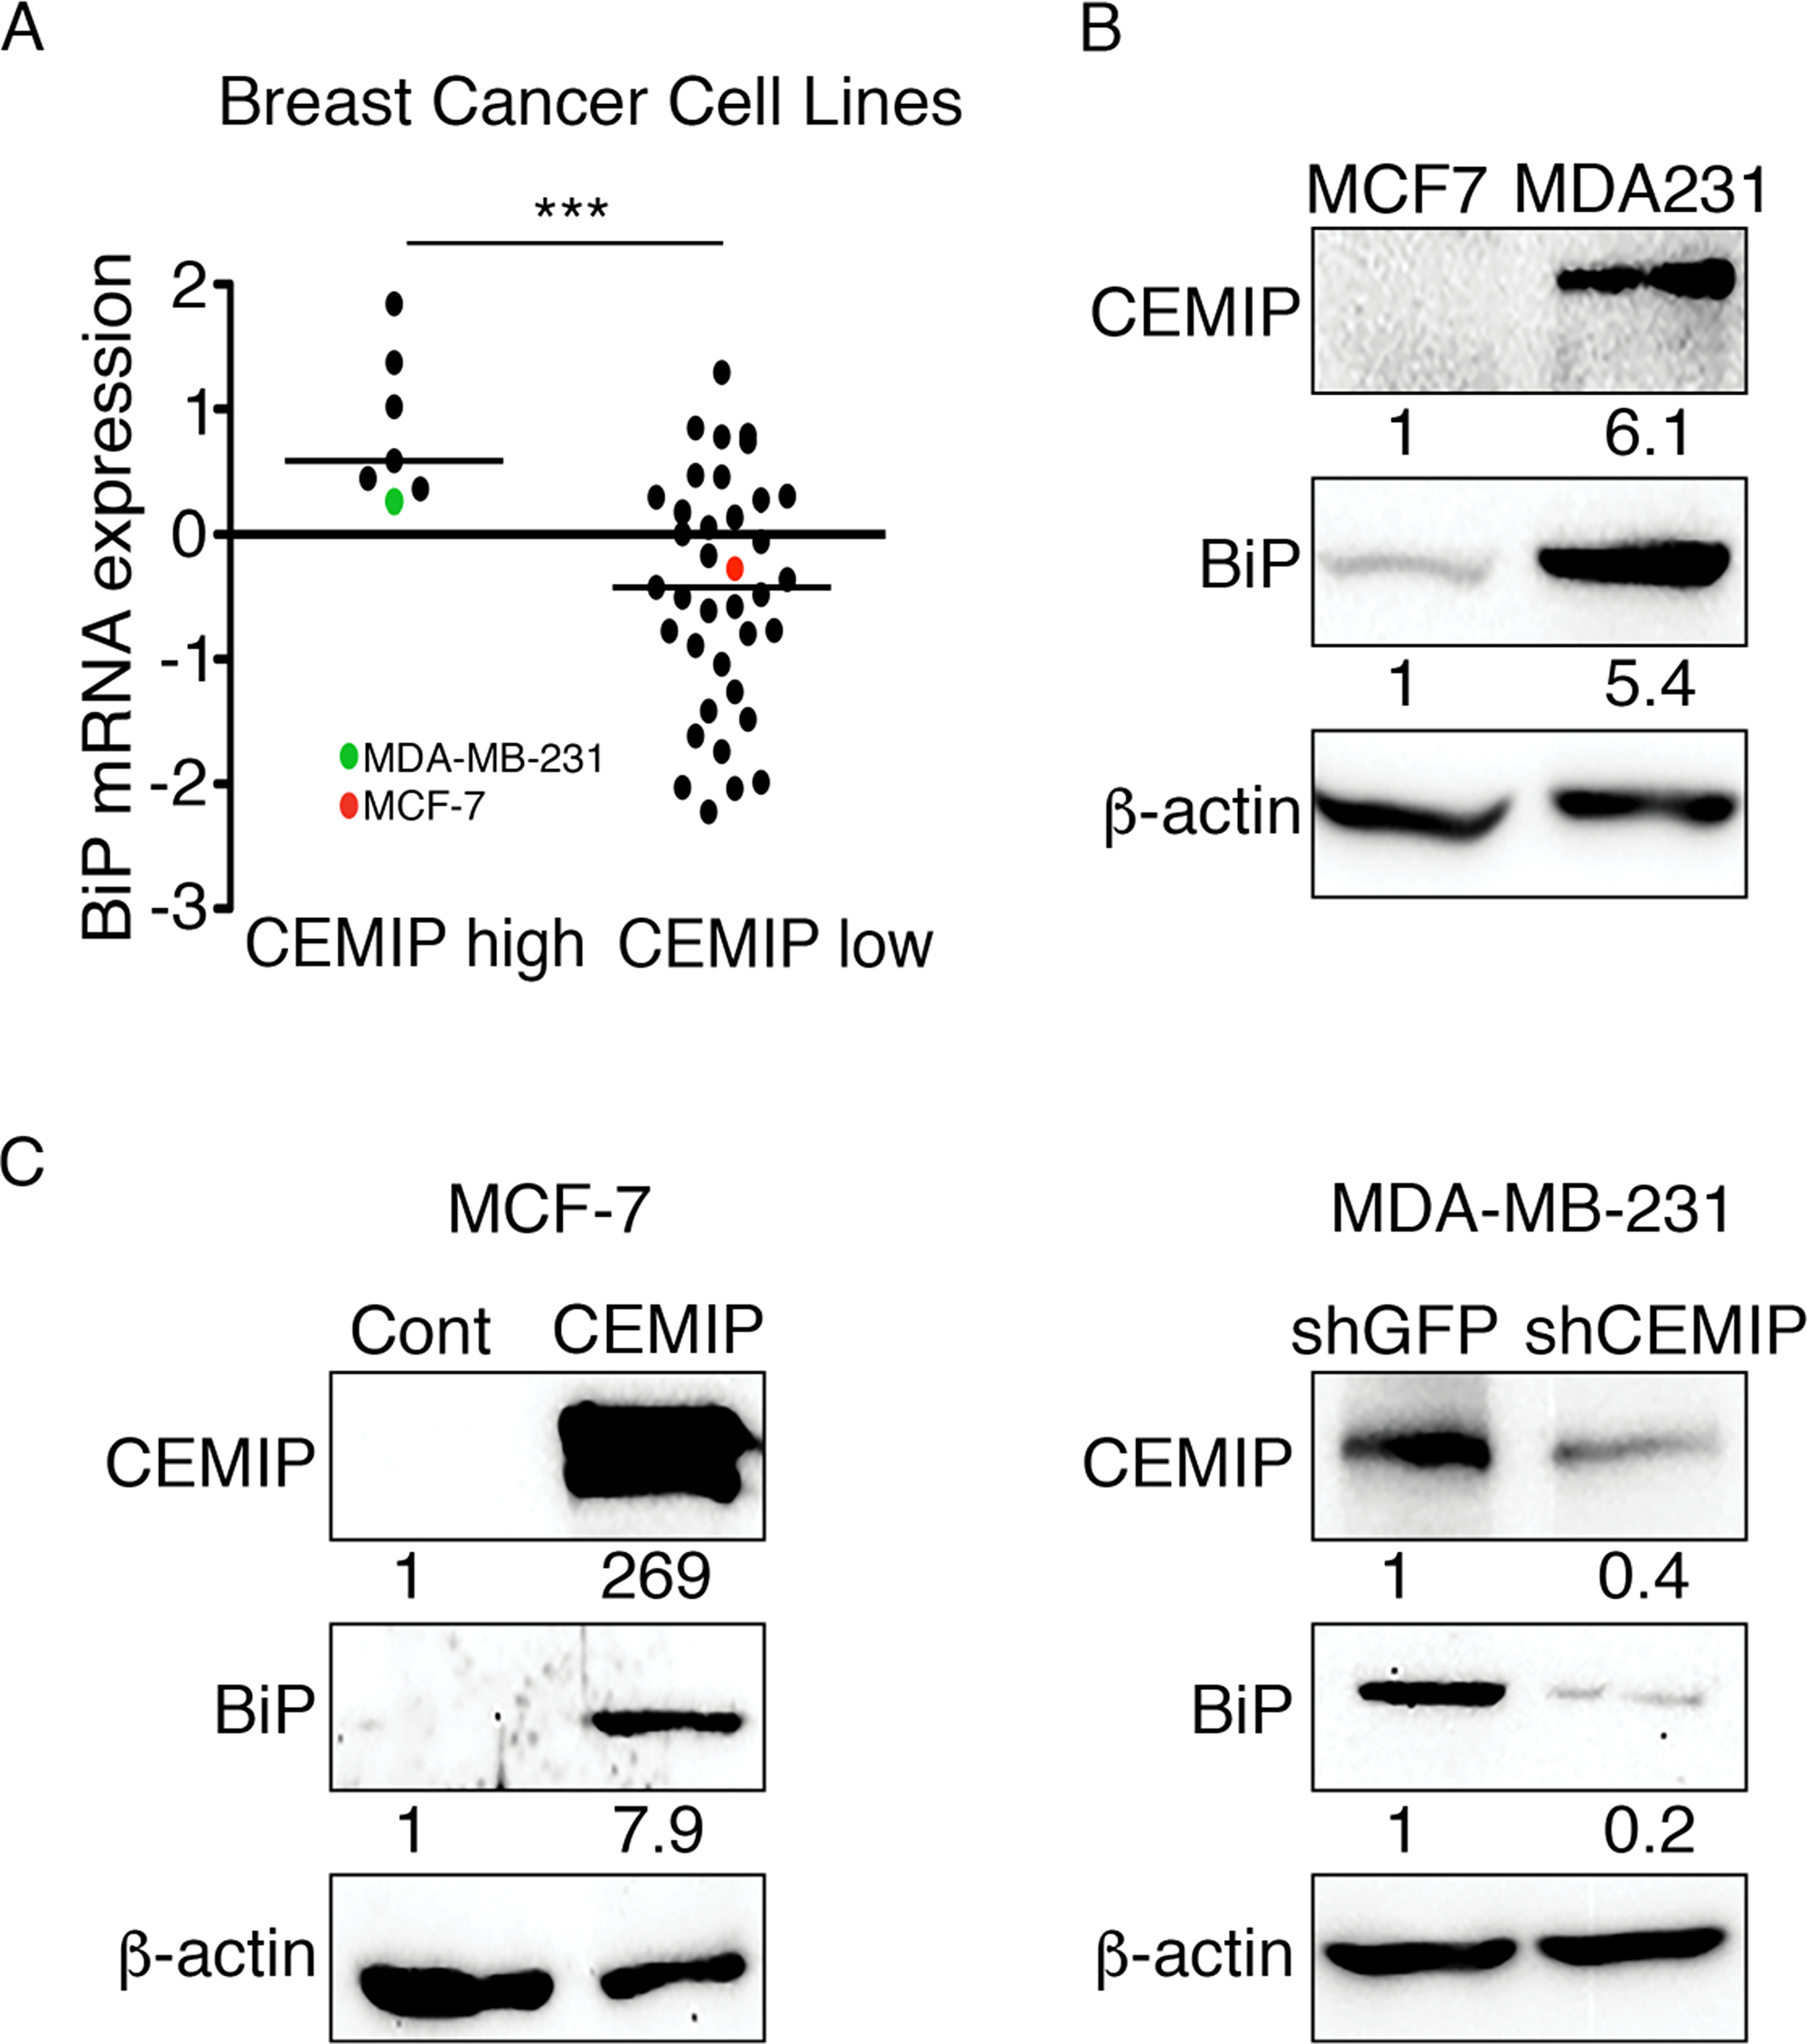 CEMIP upregulates BiP in human breast cancer cell lines.